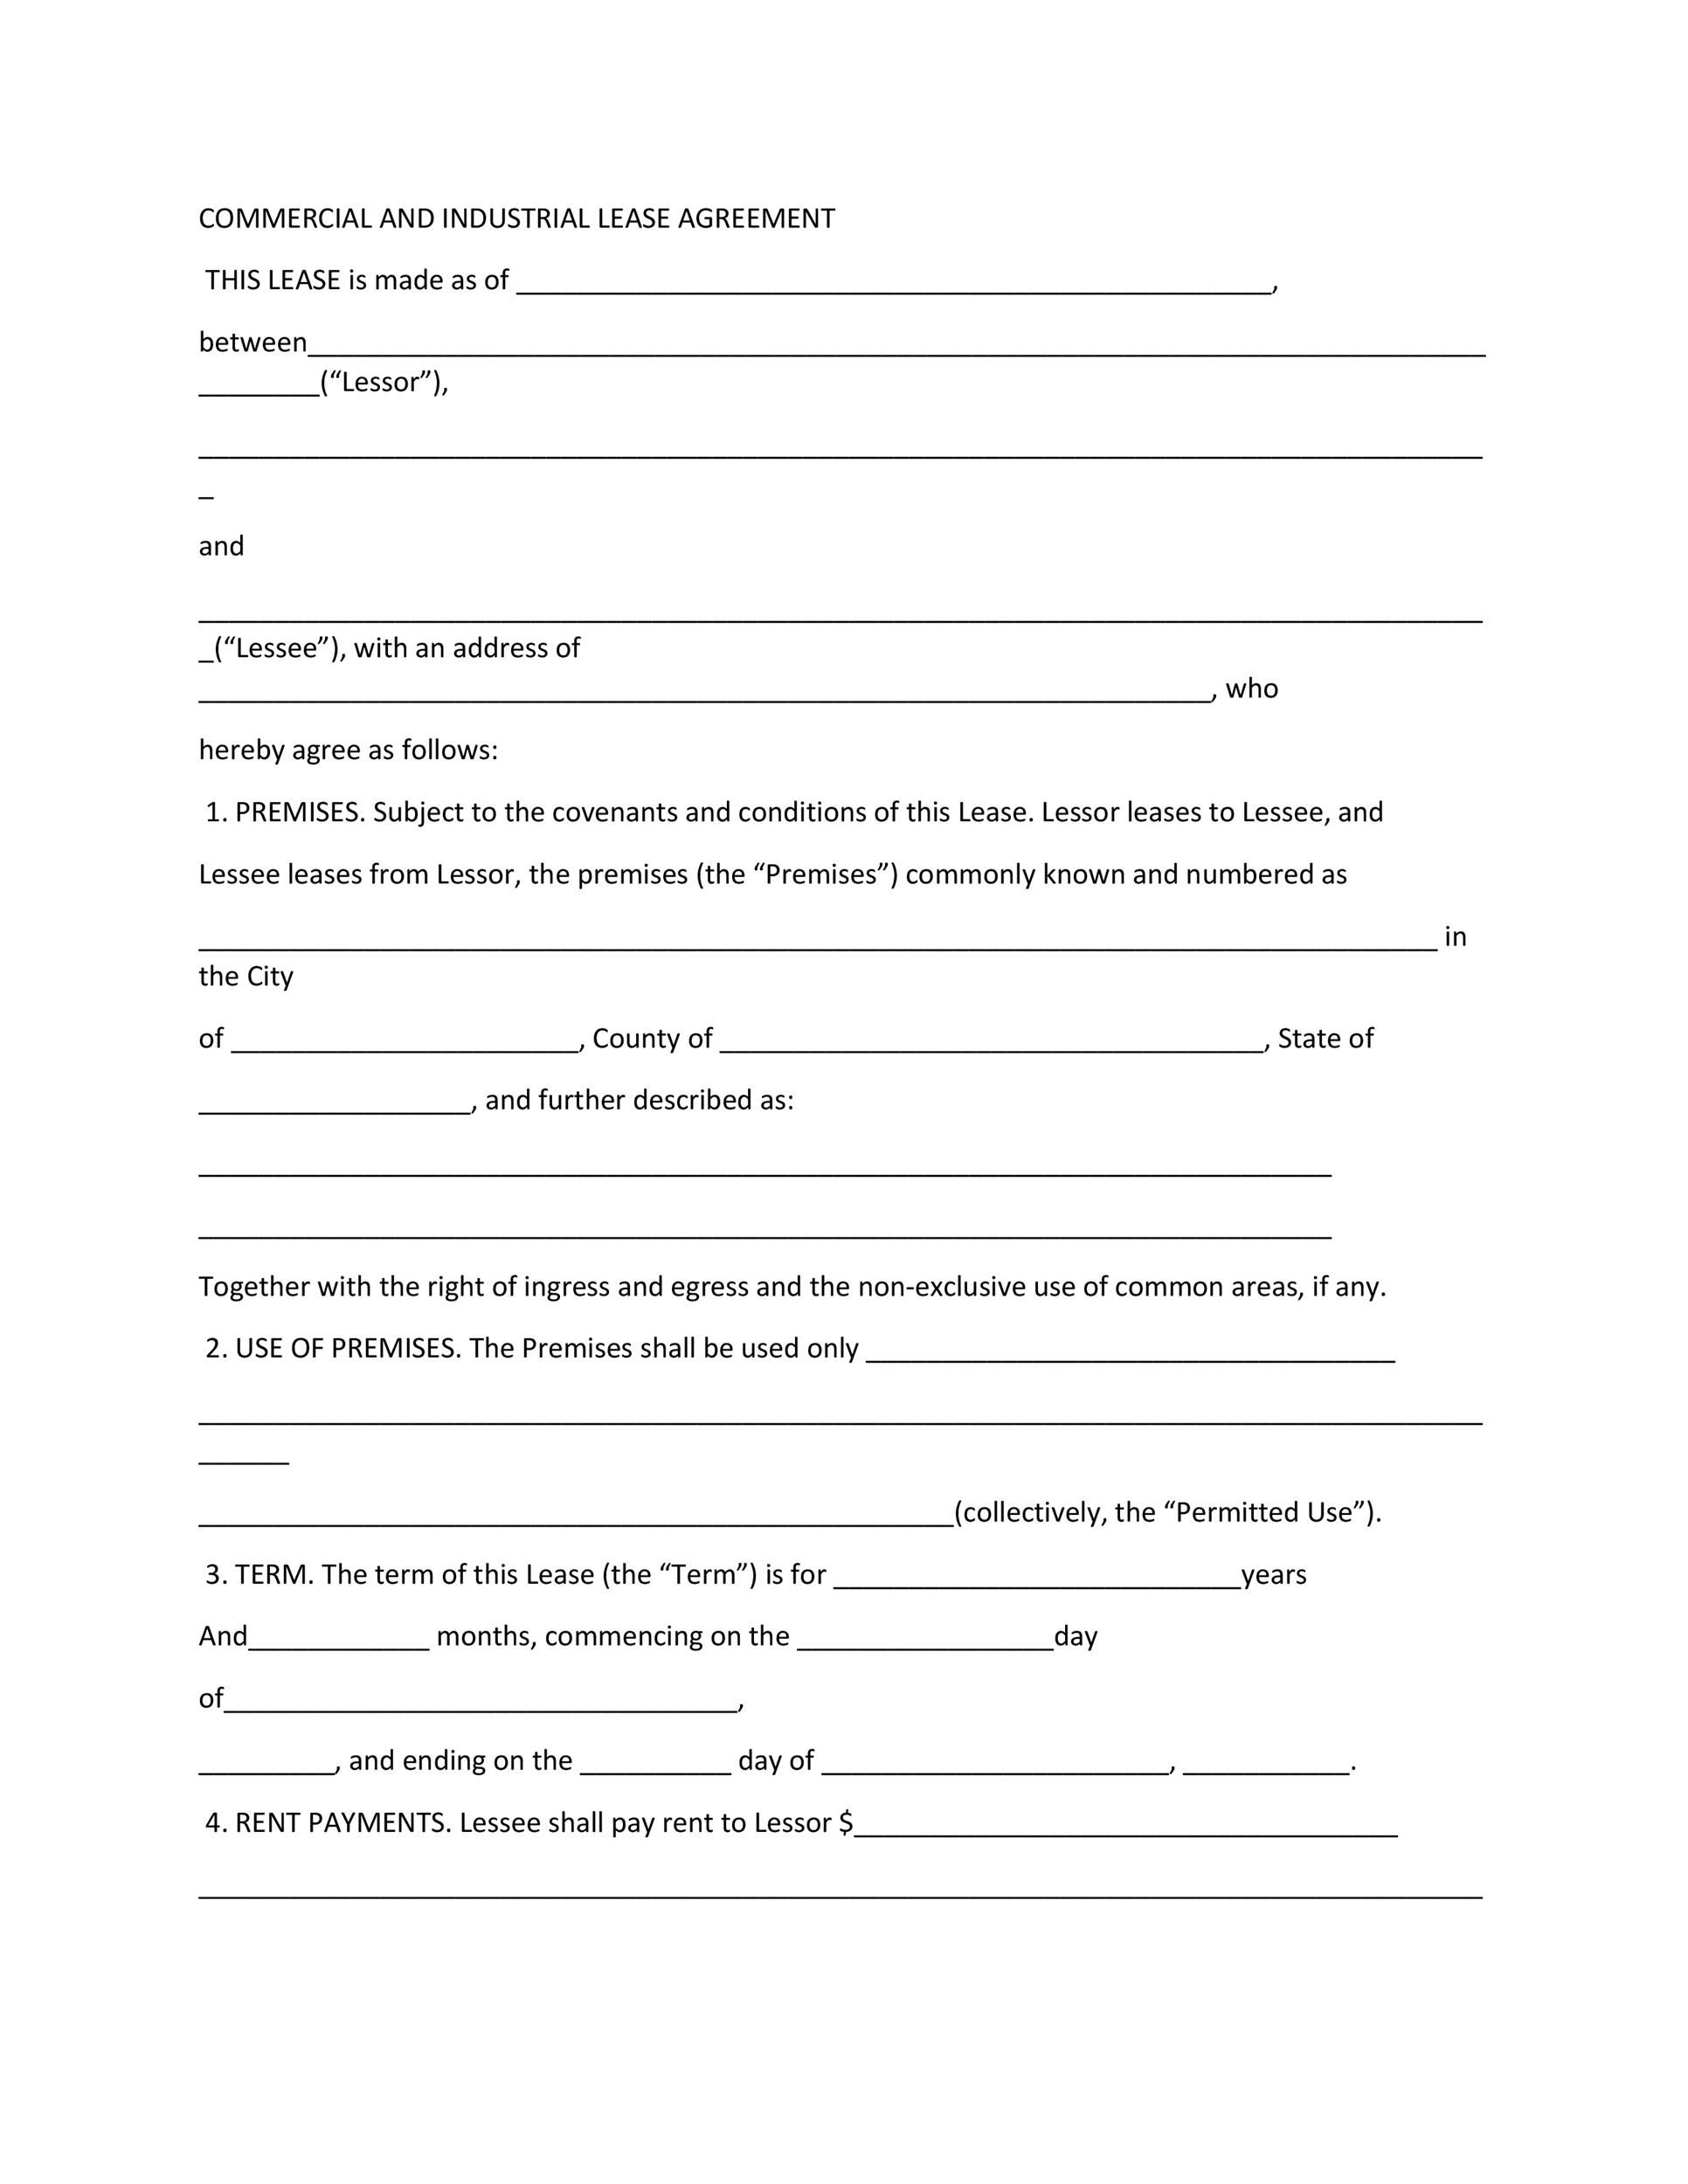 009 Beautiful Free Commercial Lease Agreement Template Australia High Resolution  Queensland DownloadFull